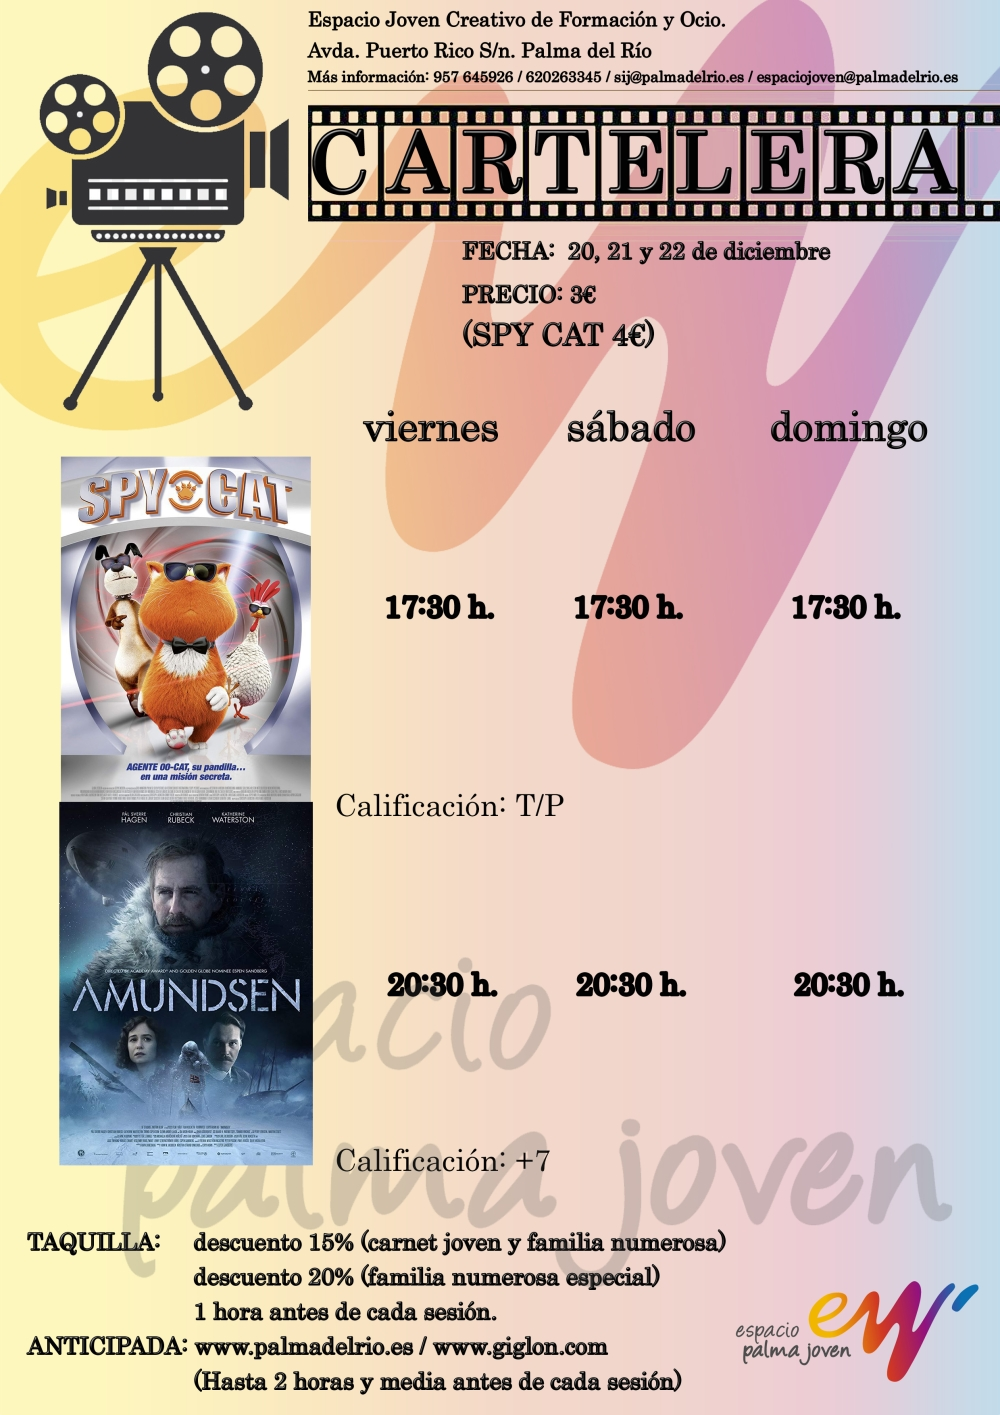 https://www.palmadelrio.es/sites/default/files/horario_cine_20_21_y_22_dic.jpg